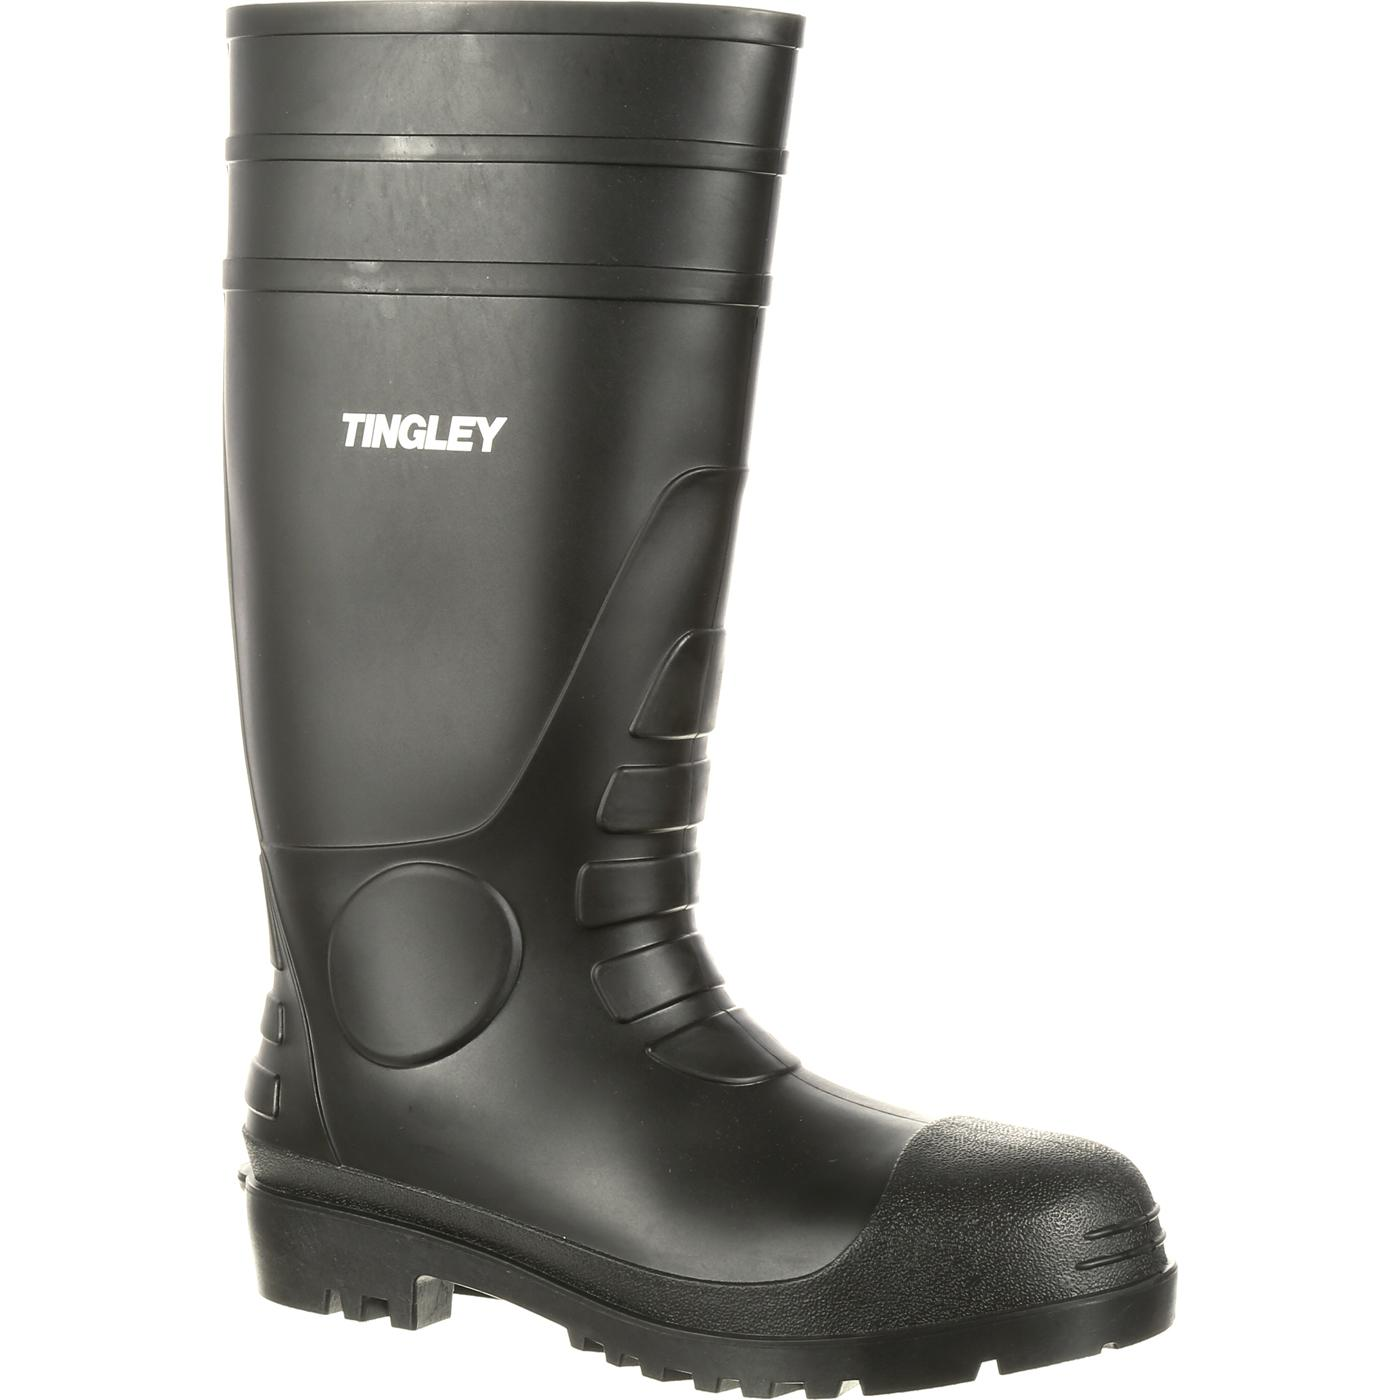 Rocky Boots - Outdoor & Work Boots. Shop all Rocky Boots safety and work boots for the toughest environments and terrains. Rocky Boots provides protection and comfort from strong, quality materials.